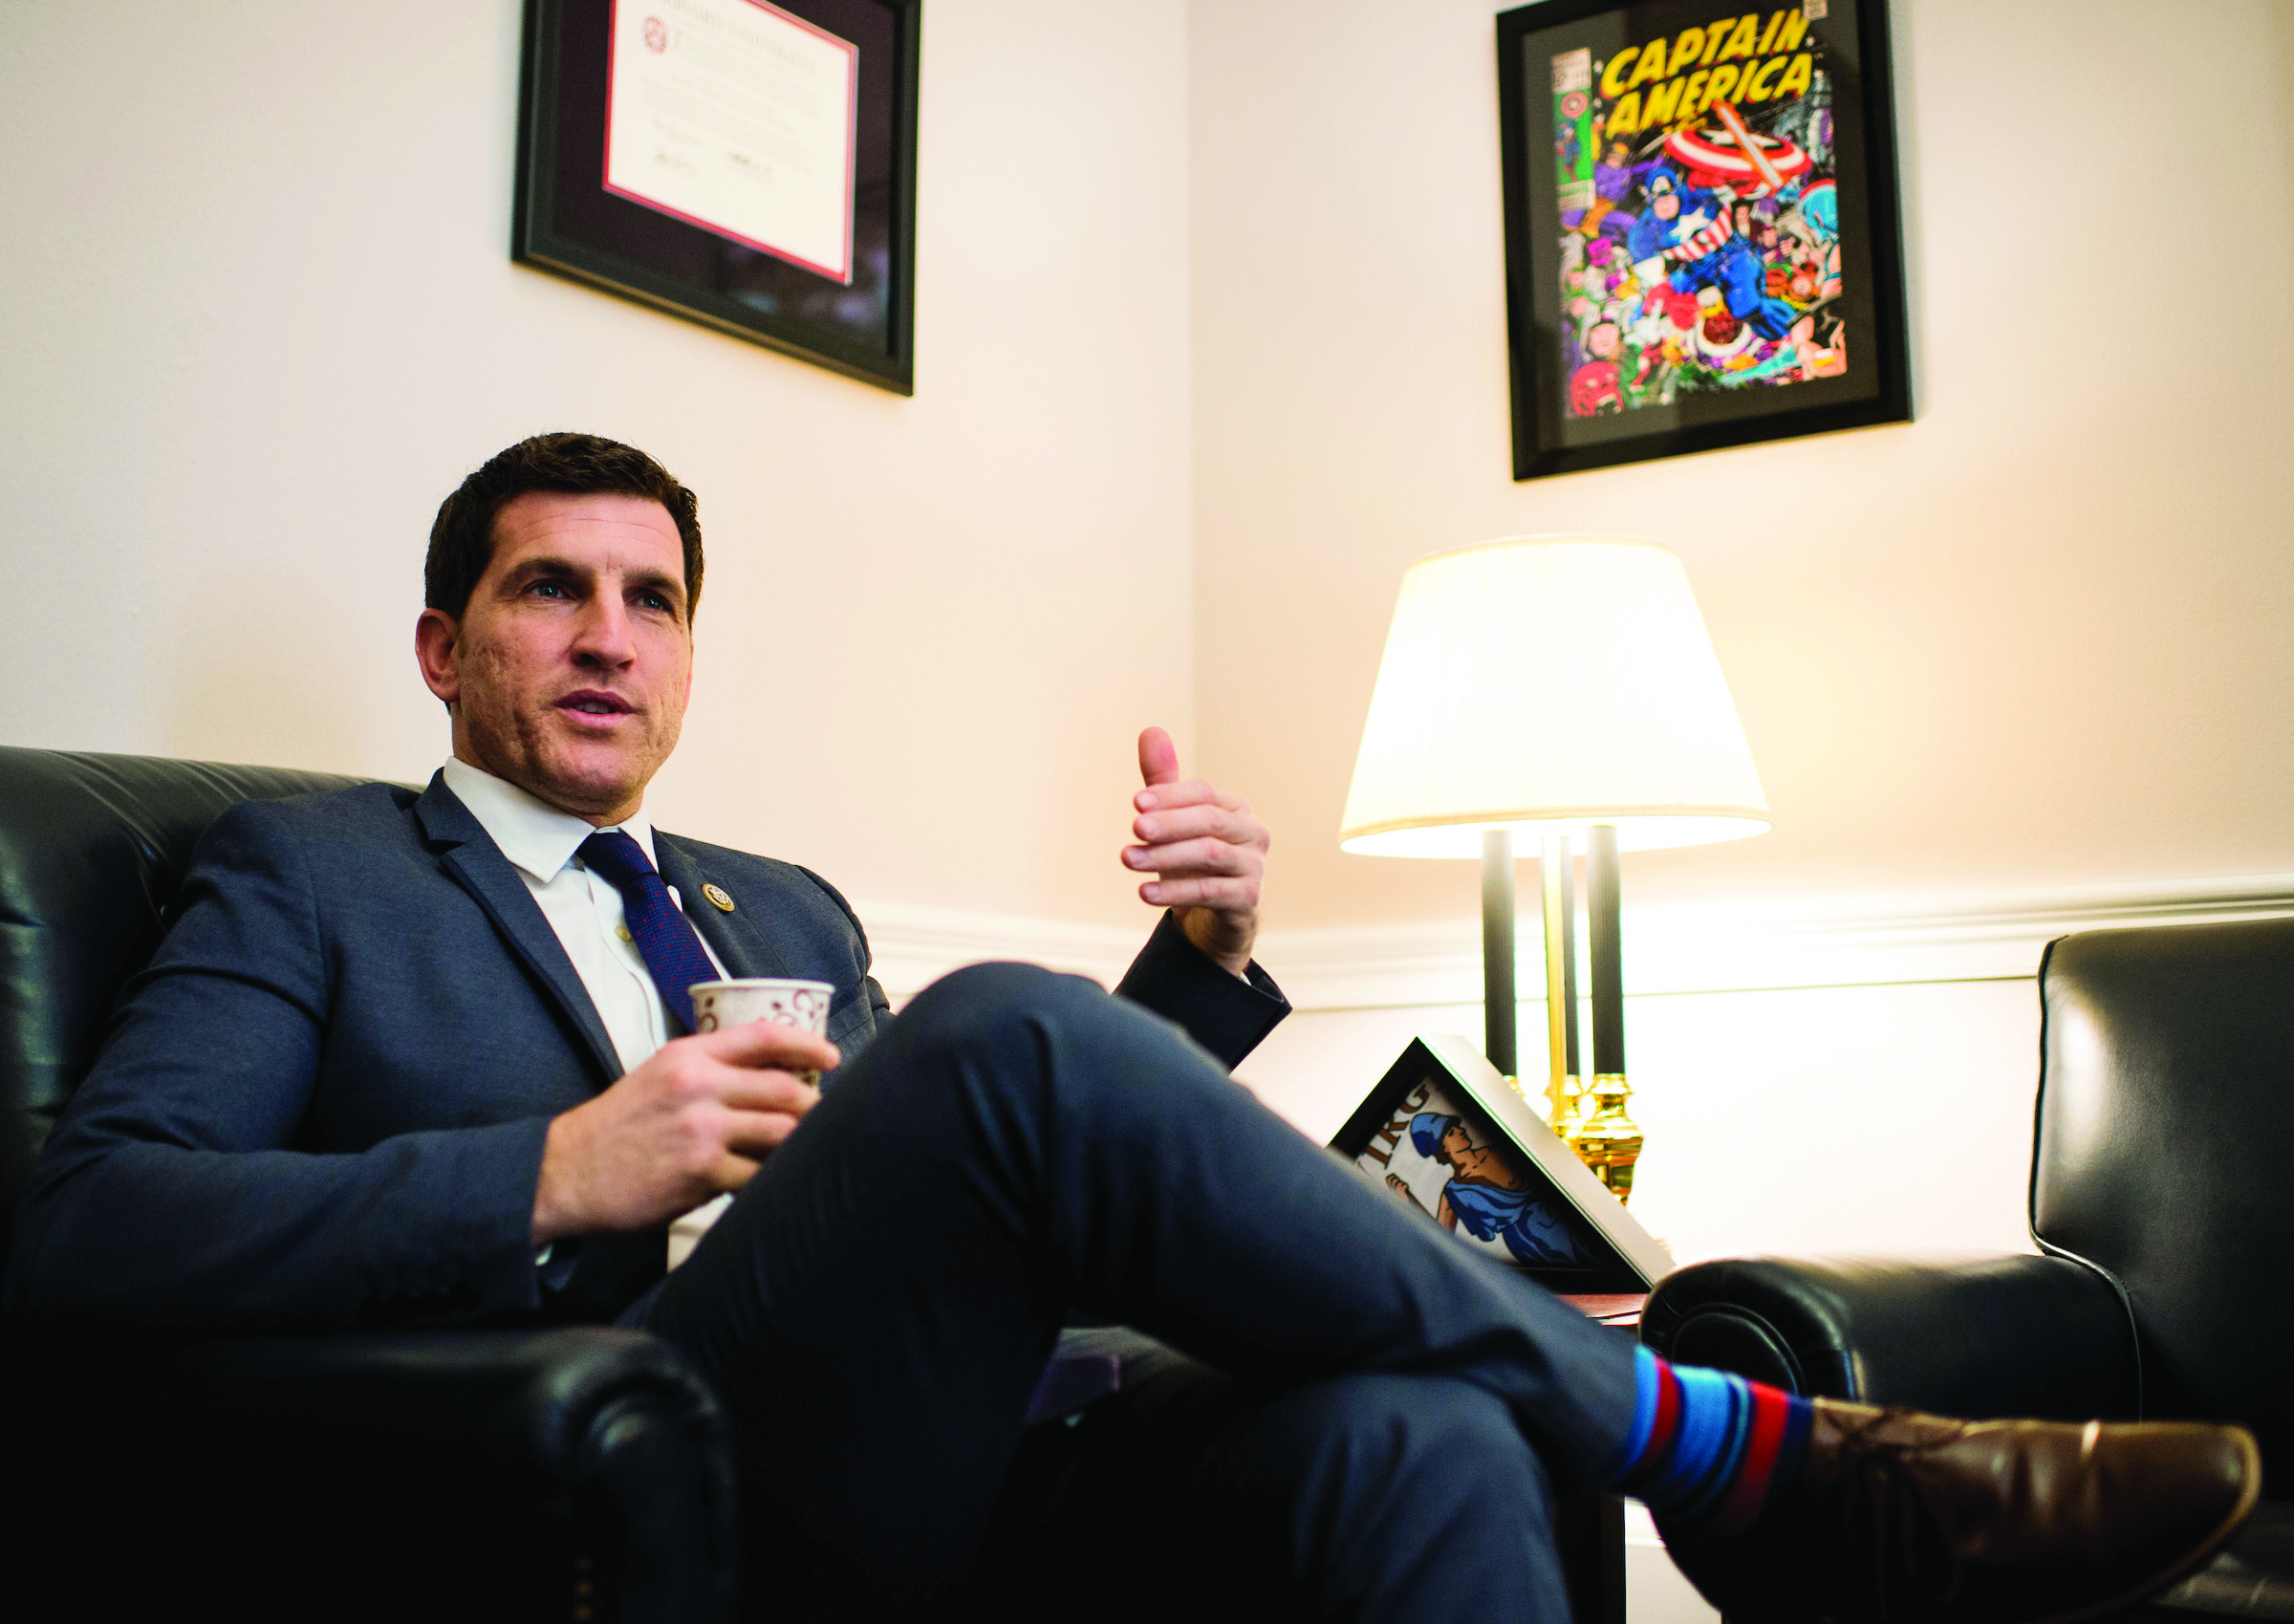 Virginia Rep. Scott Taylor says he considers himself both a budget hawk and a defense hawk. (Bill Clark/CQ Roll Call file photo)